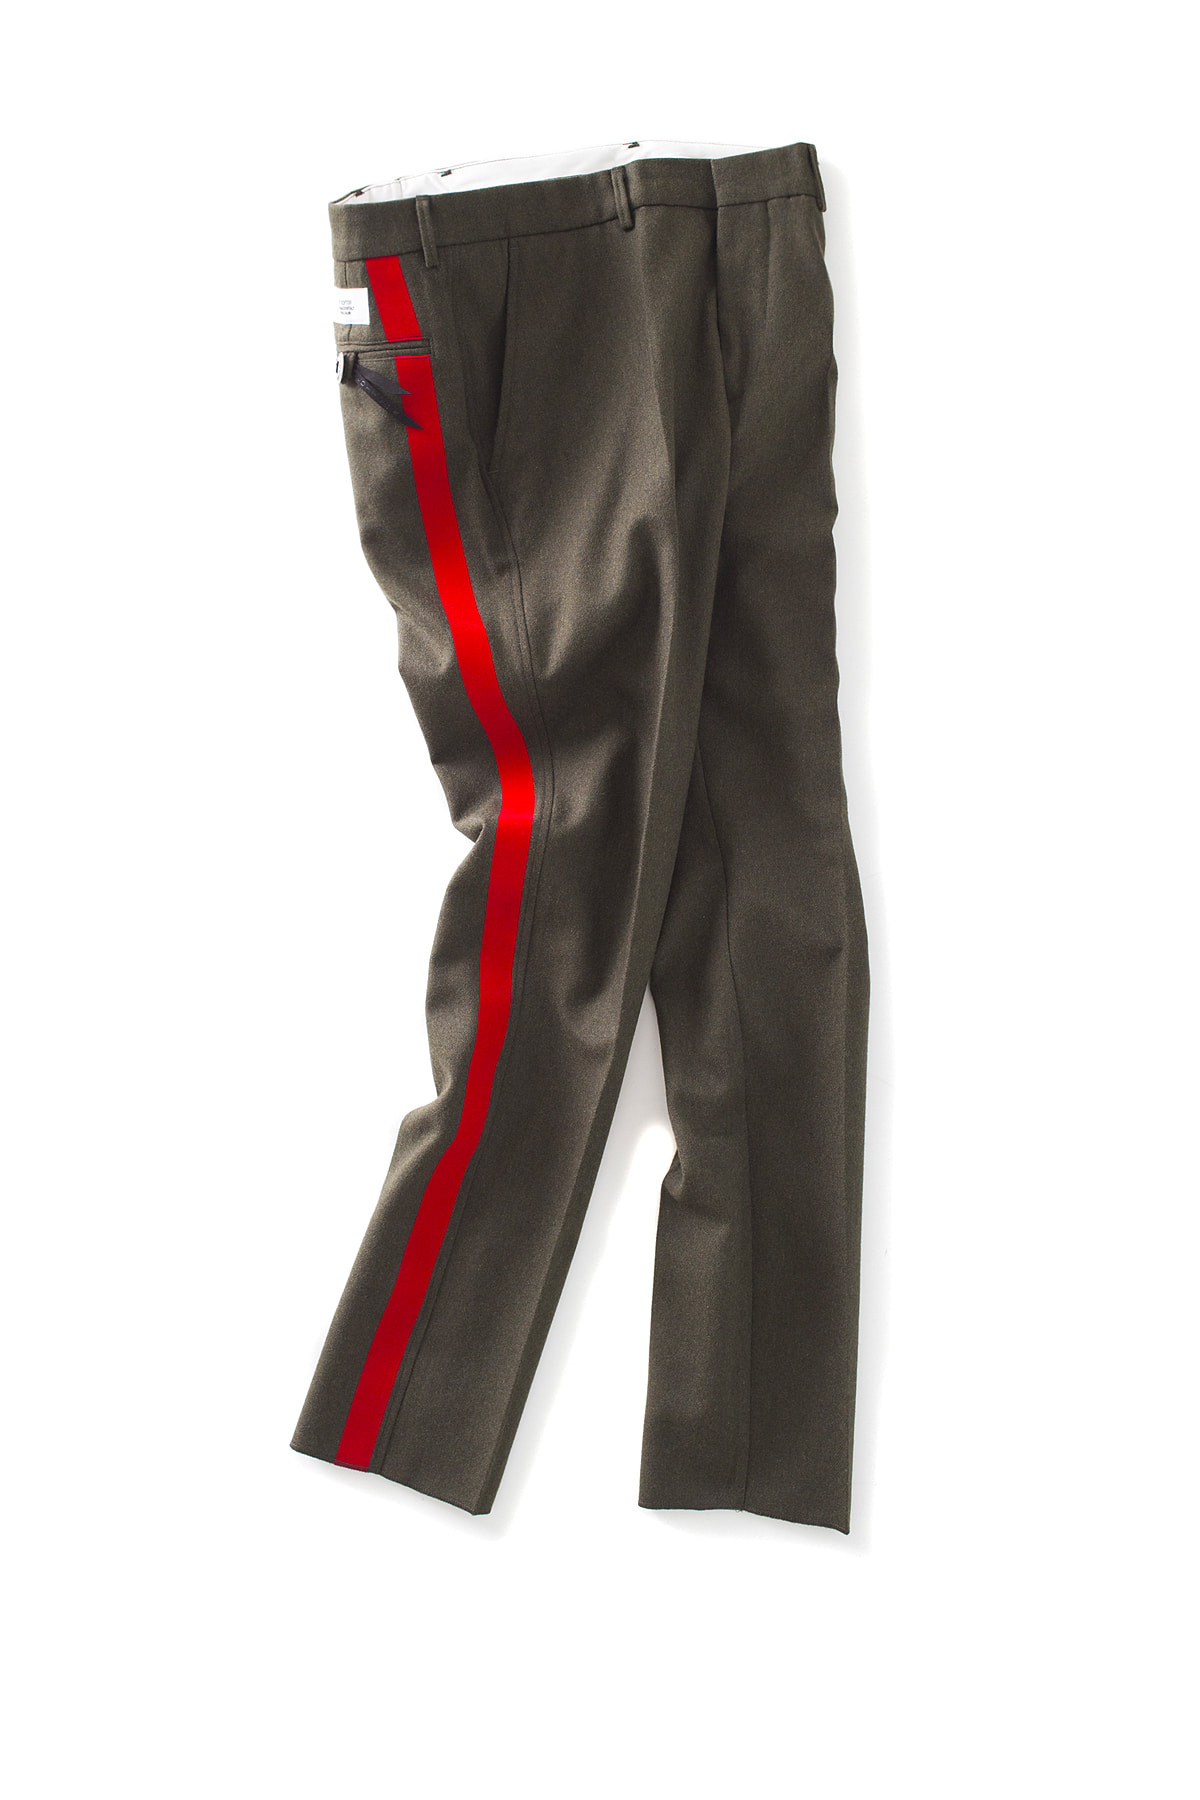 THE EDITOR : Line Wool Trouser (Khaki x Red Line)